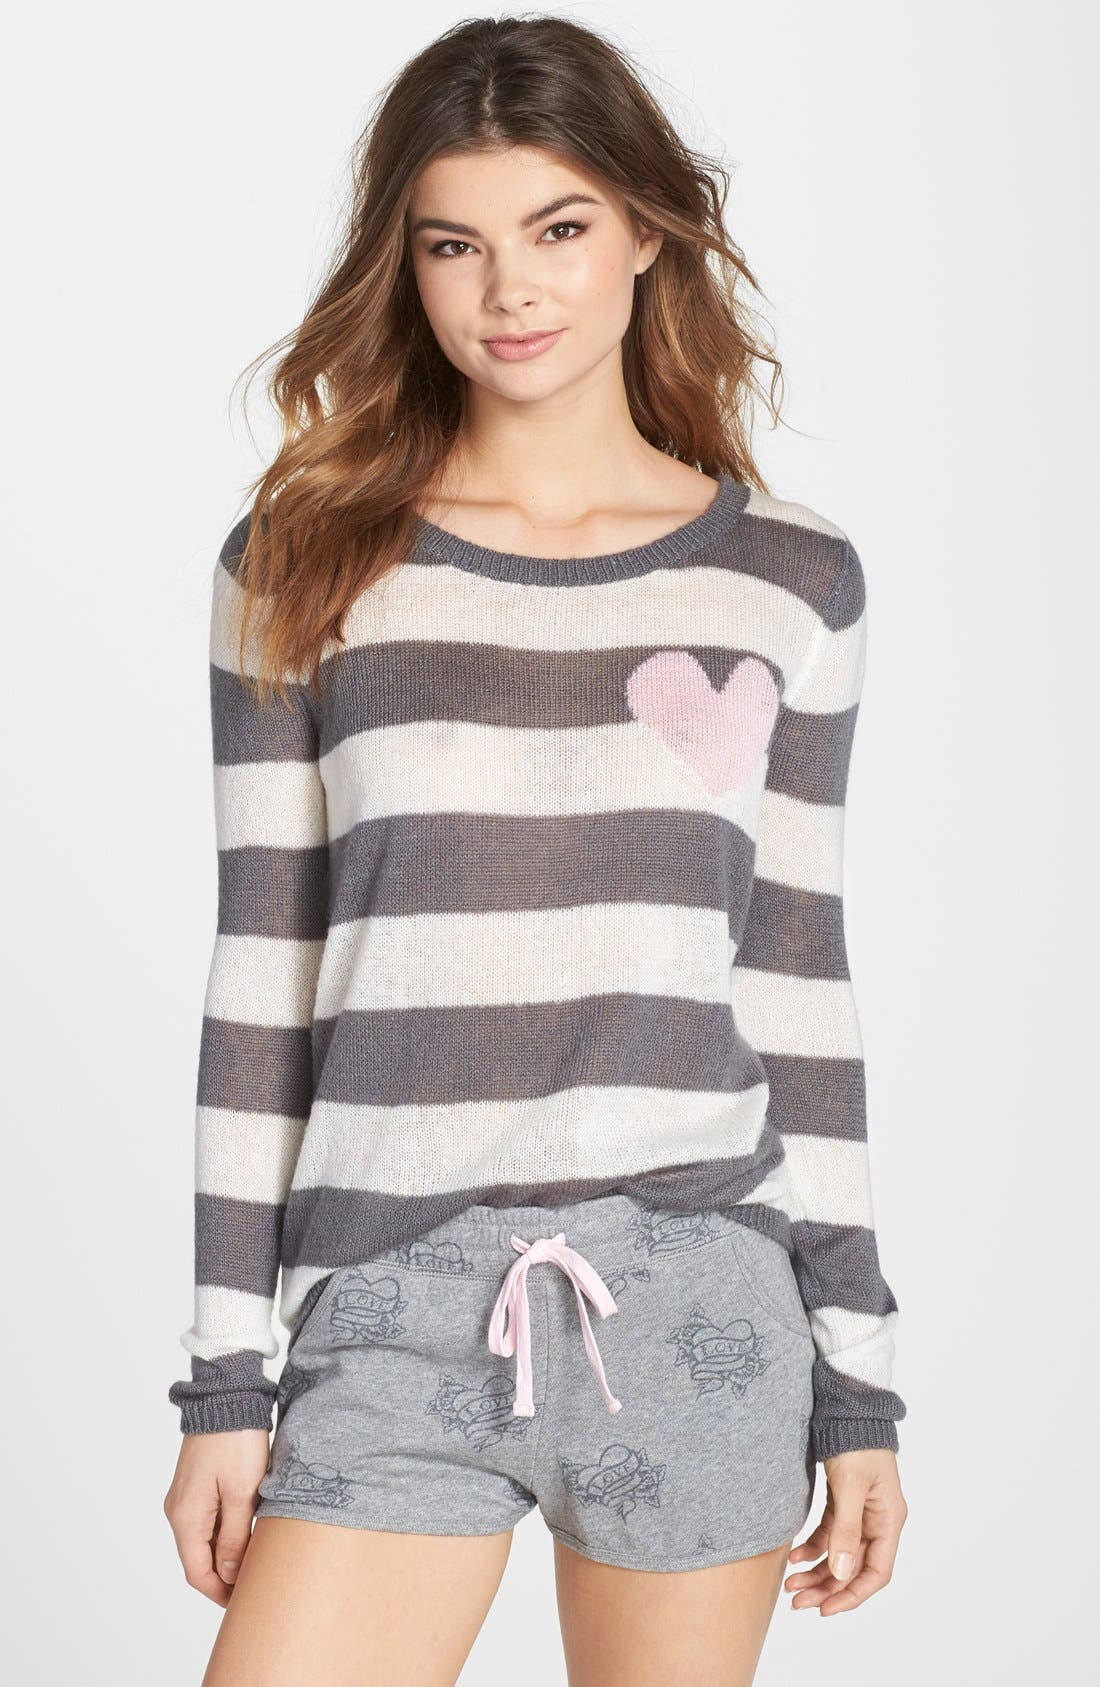 Alternate Image 1 Selected - PJ Salvage 'Sweet Hearts' Striped Sweater